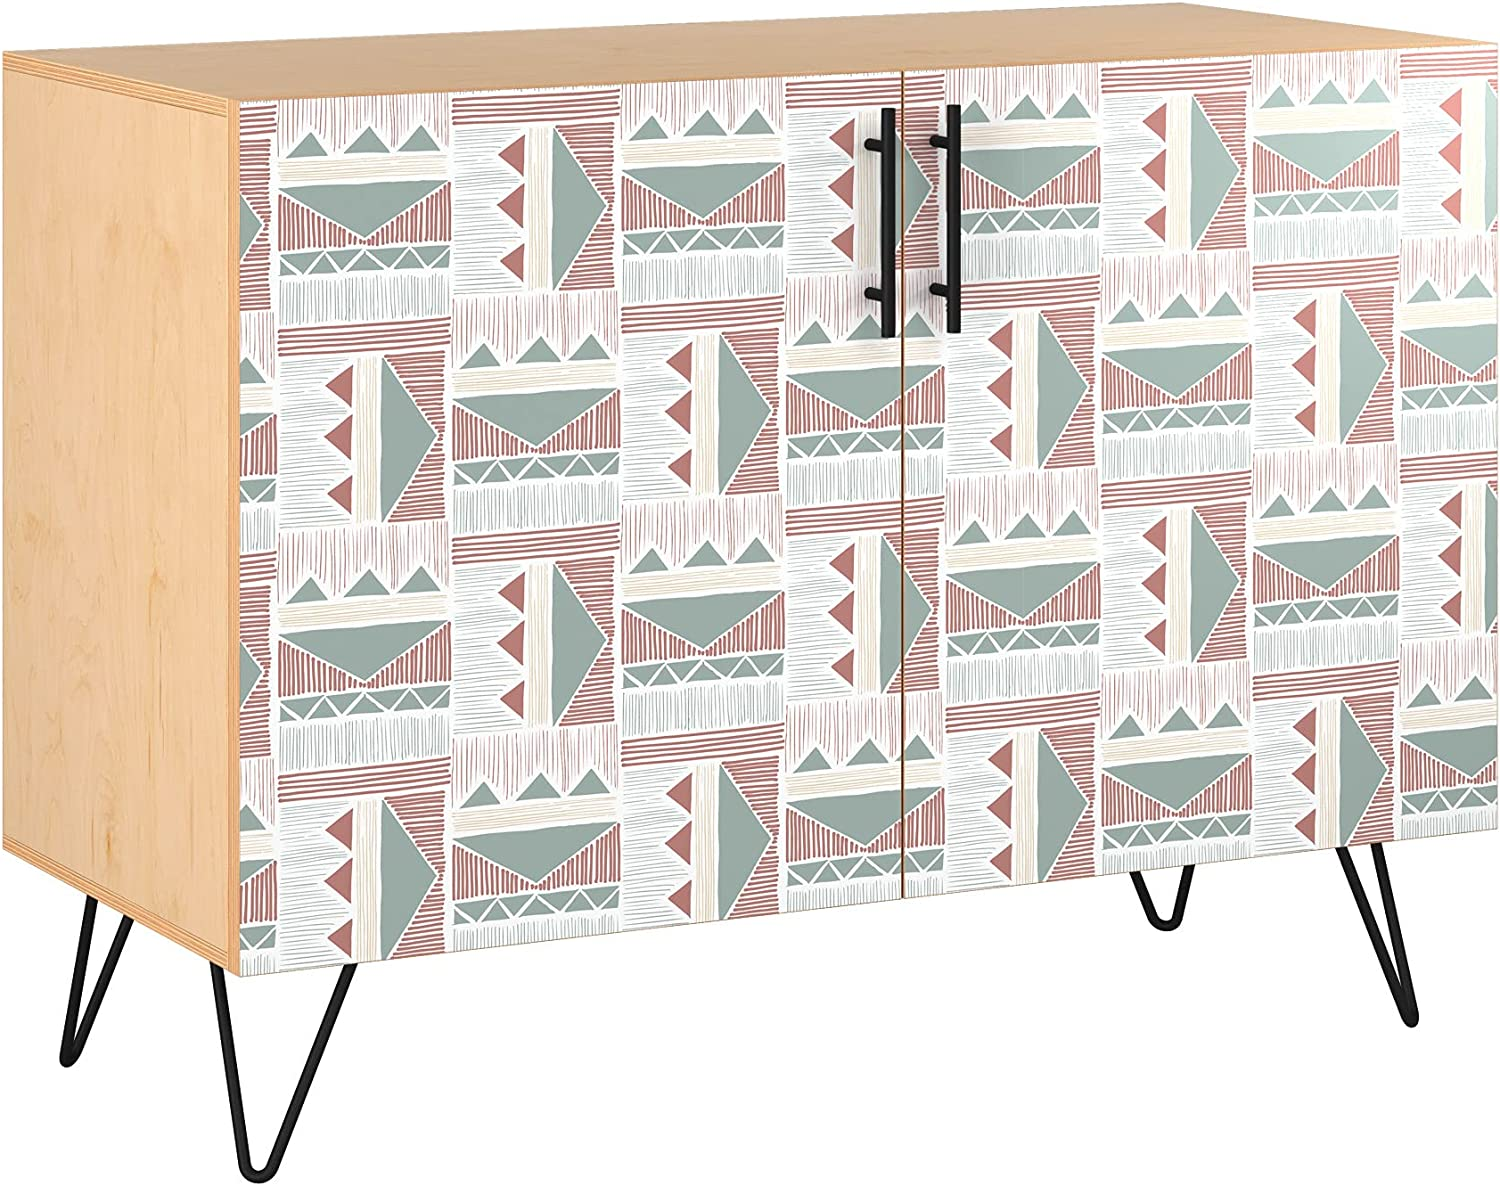 Poppy Credenza - Natural Sadie Design Base 11 in A surprise price is realized Styl Max 64% OFF 5 Colors